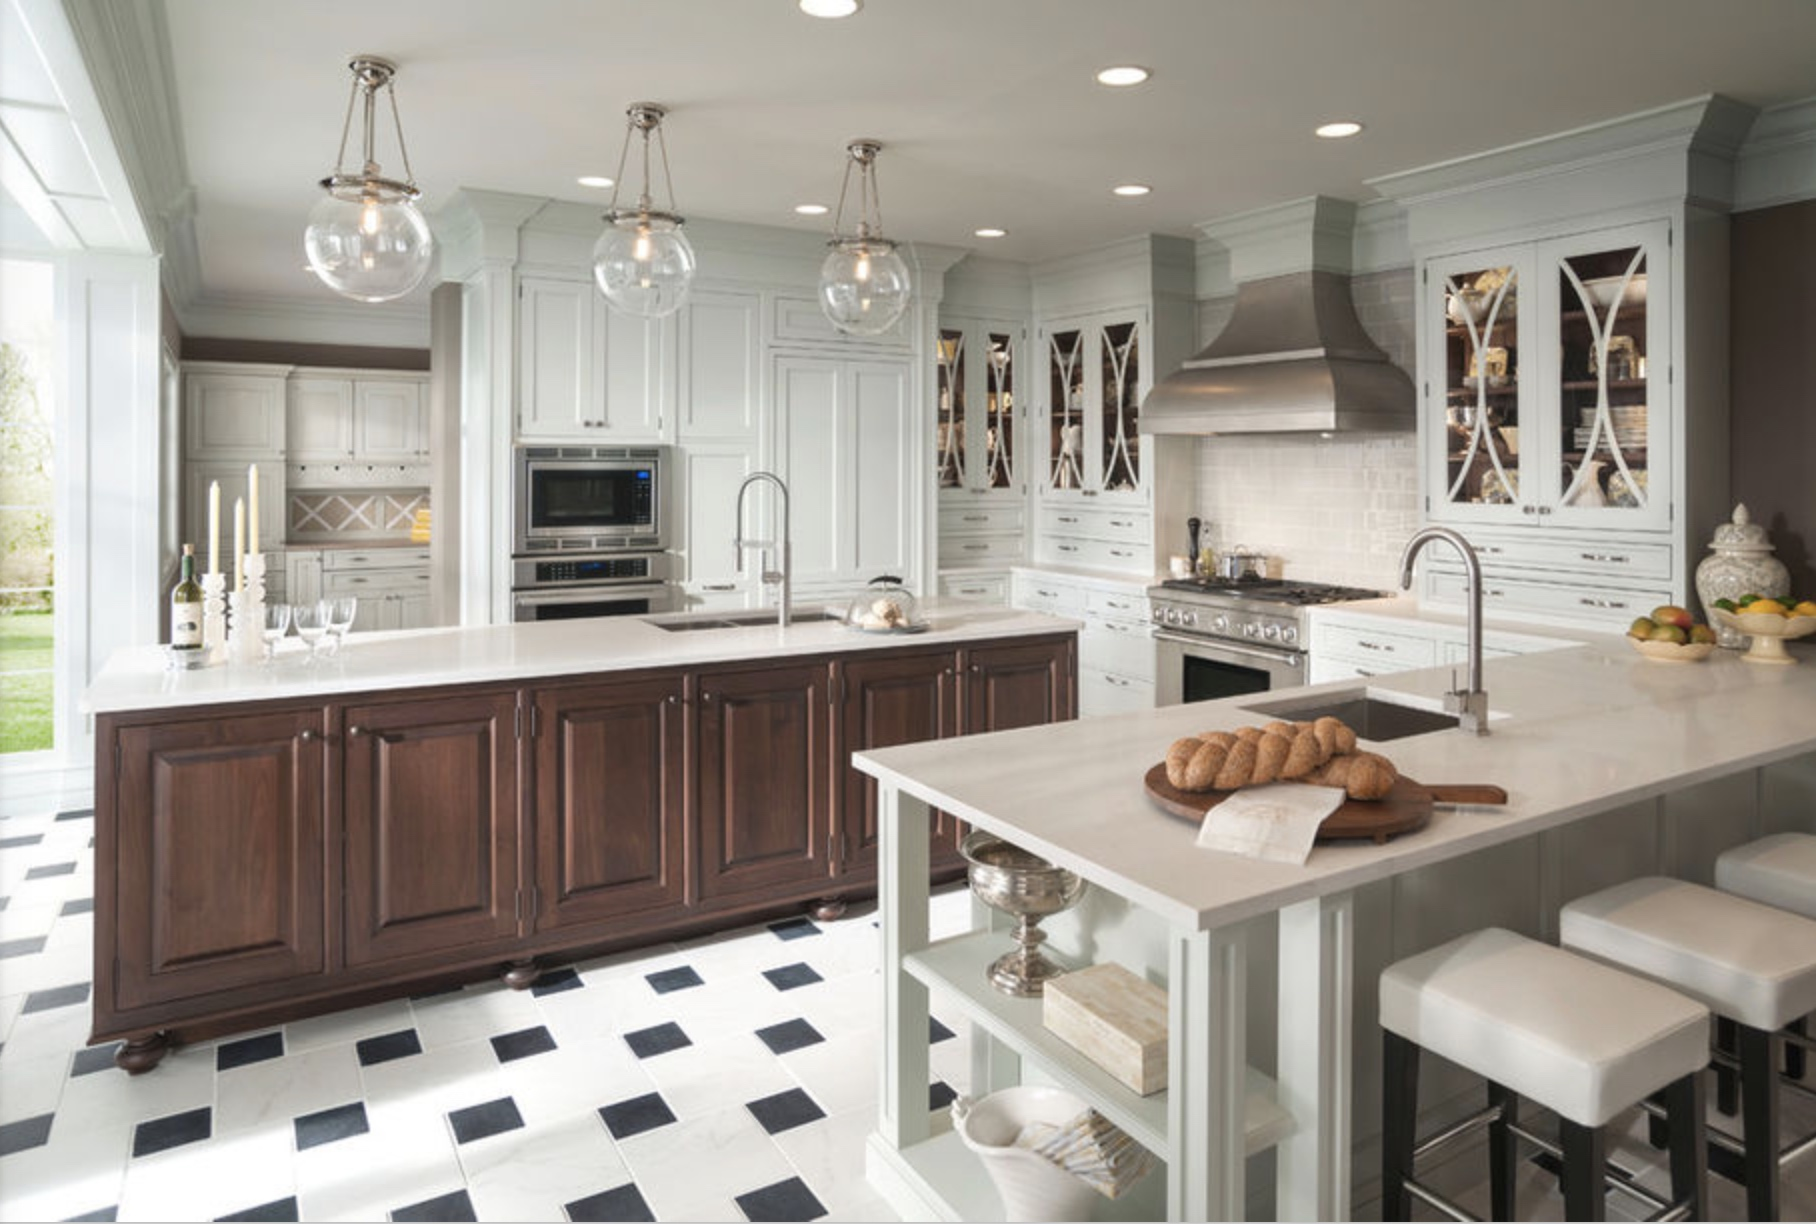 Phoenix Home Remodeling - Kitchens, Bathrooms, Additions and More